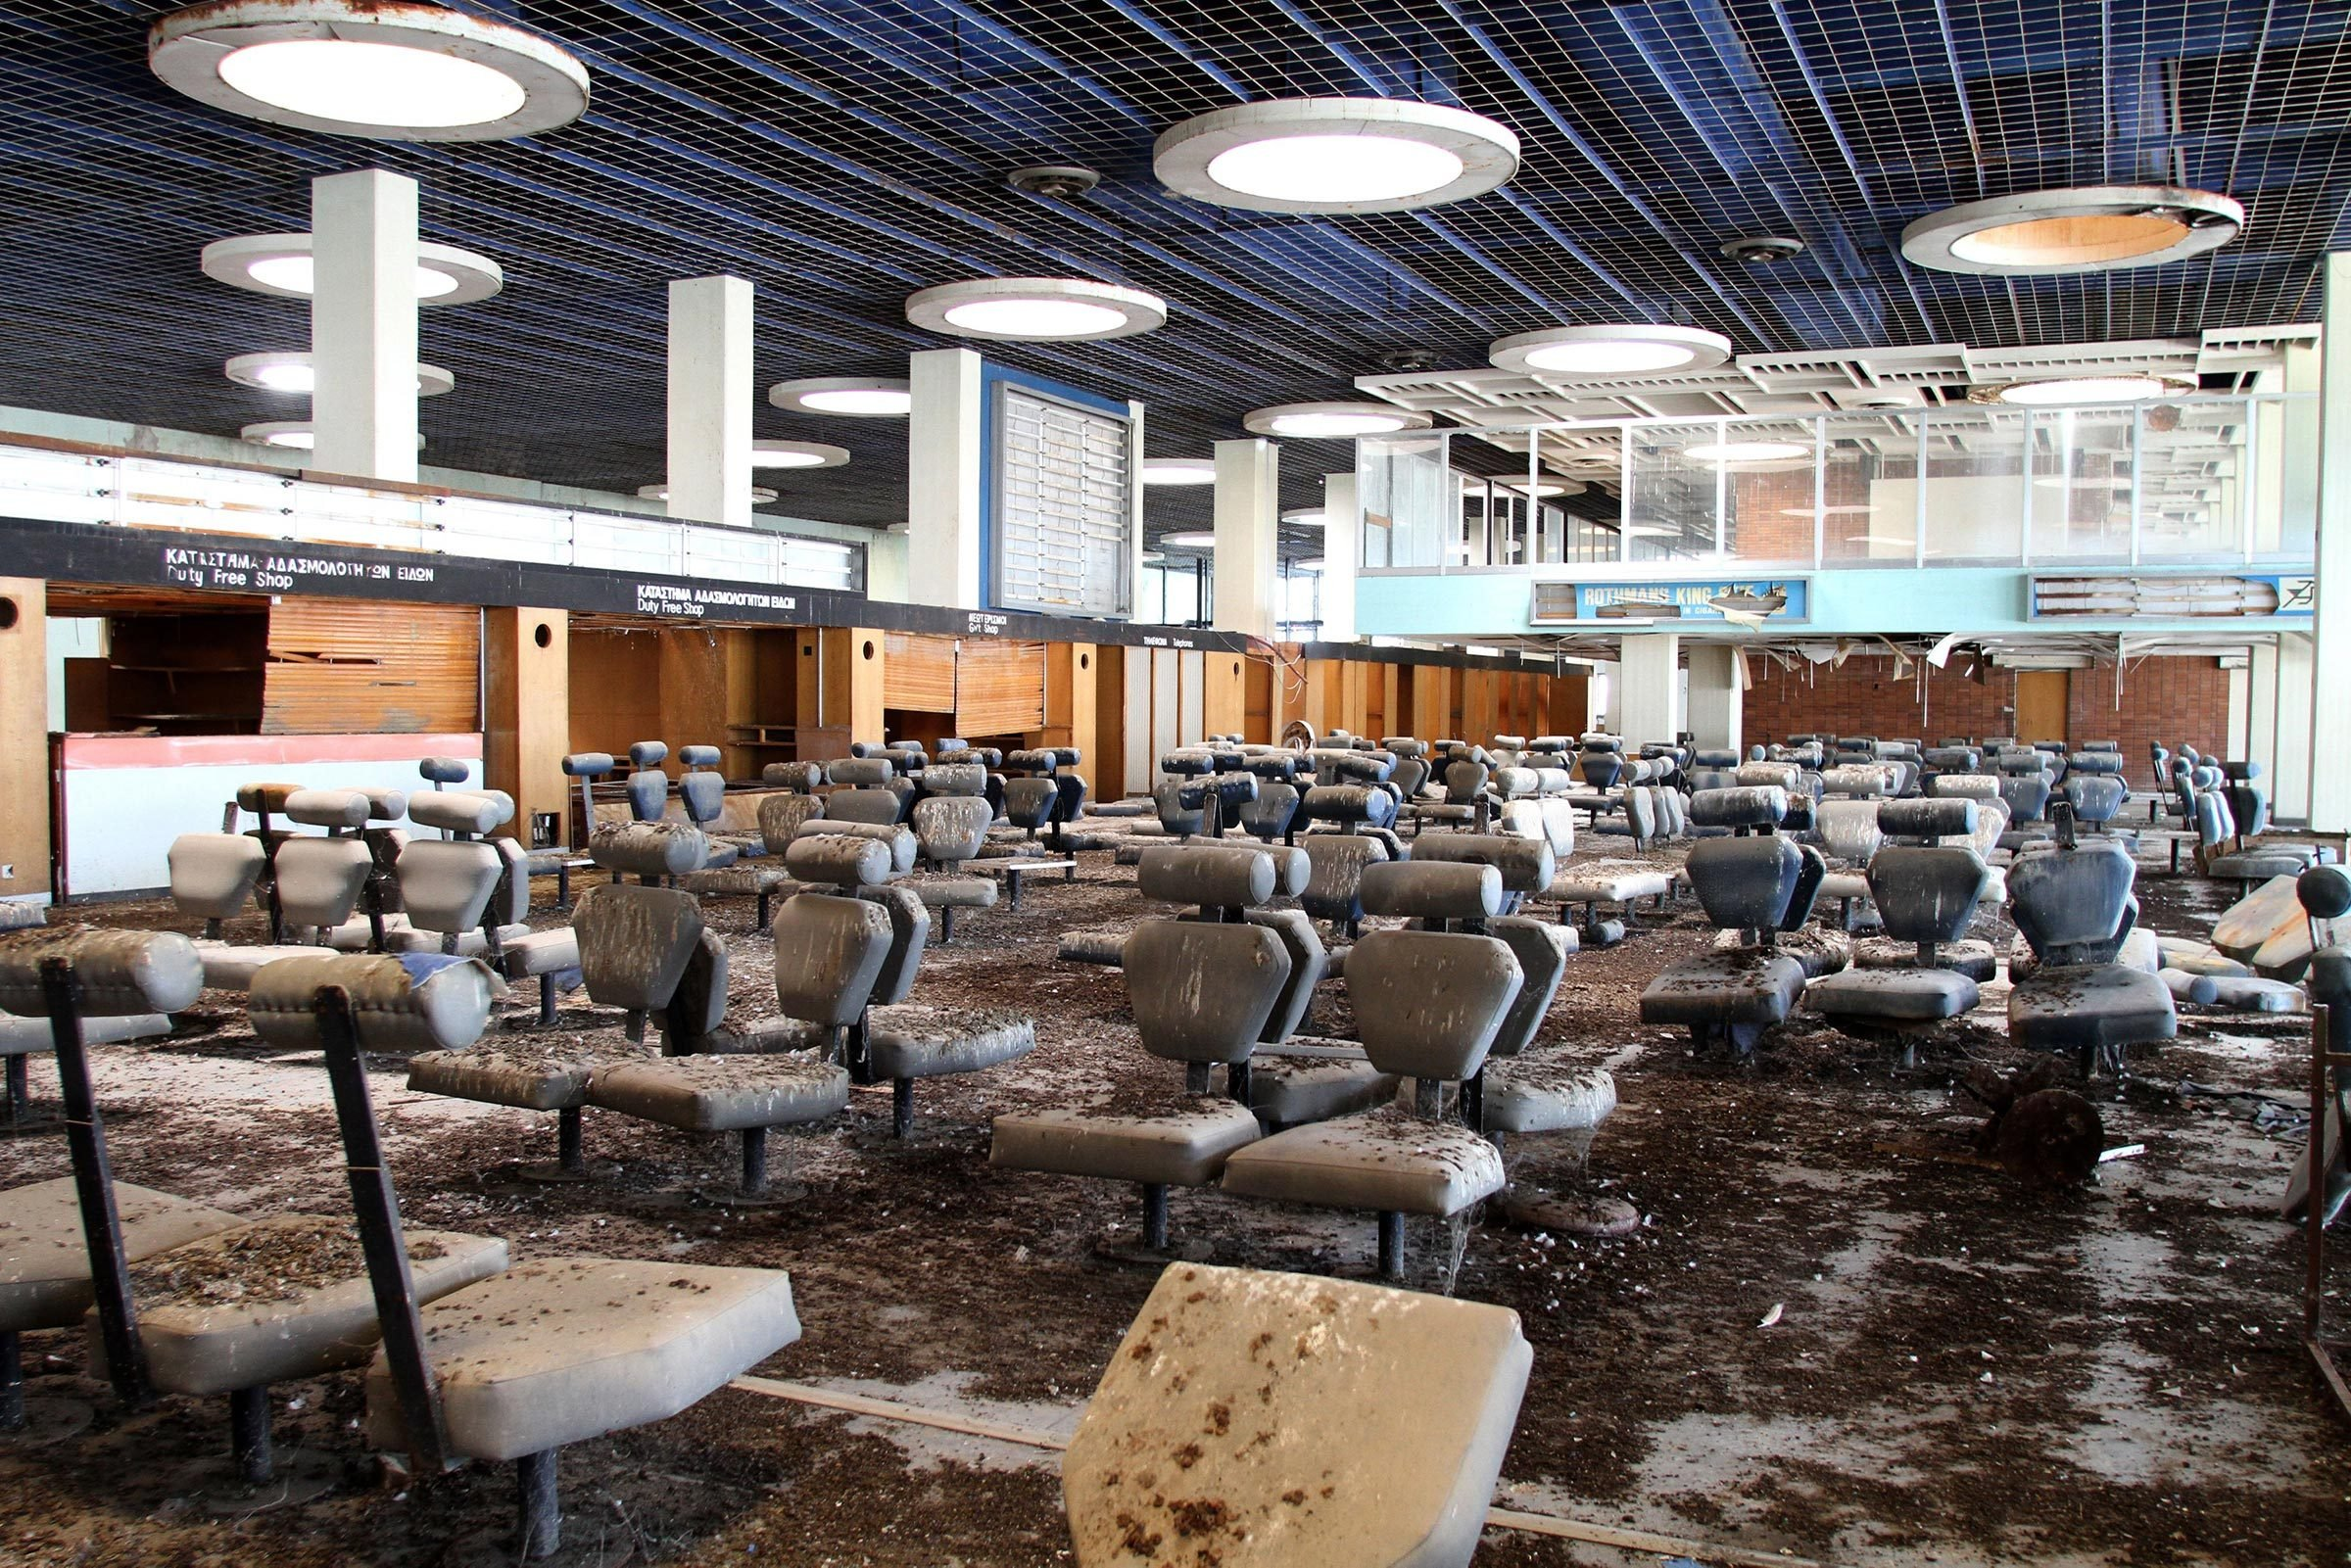 Abandoned Airports on Word Search Fun Money